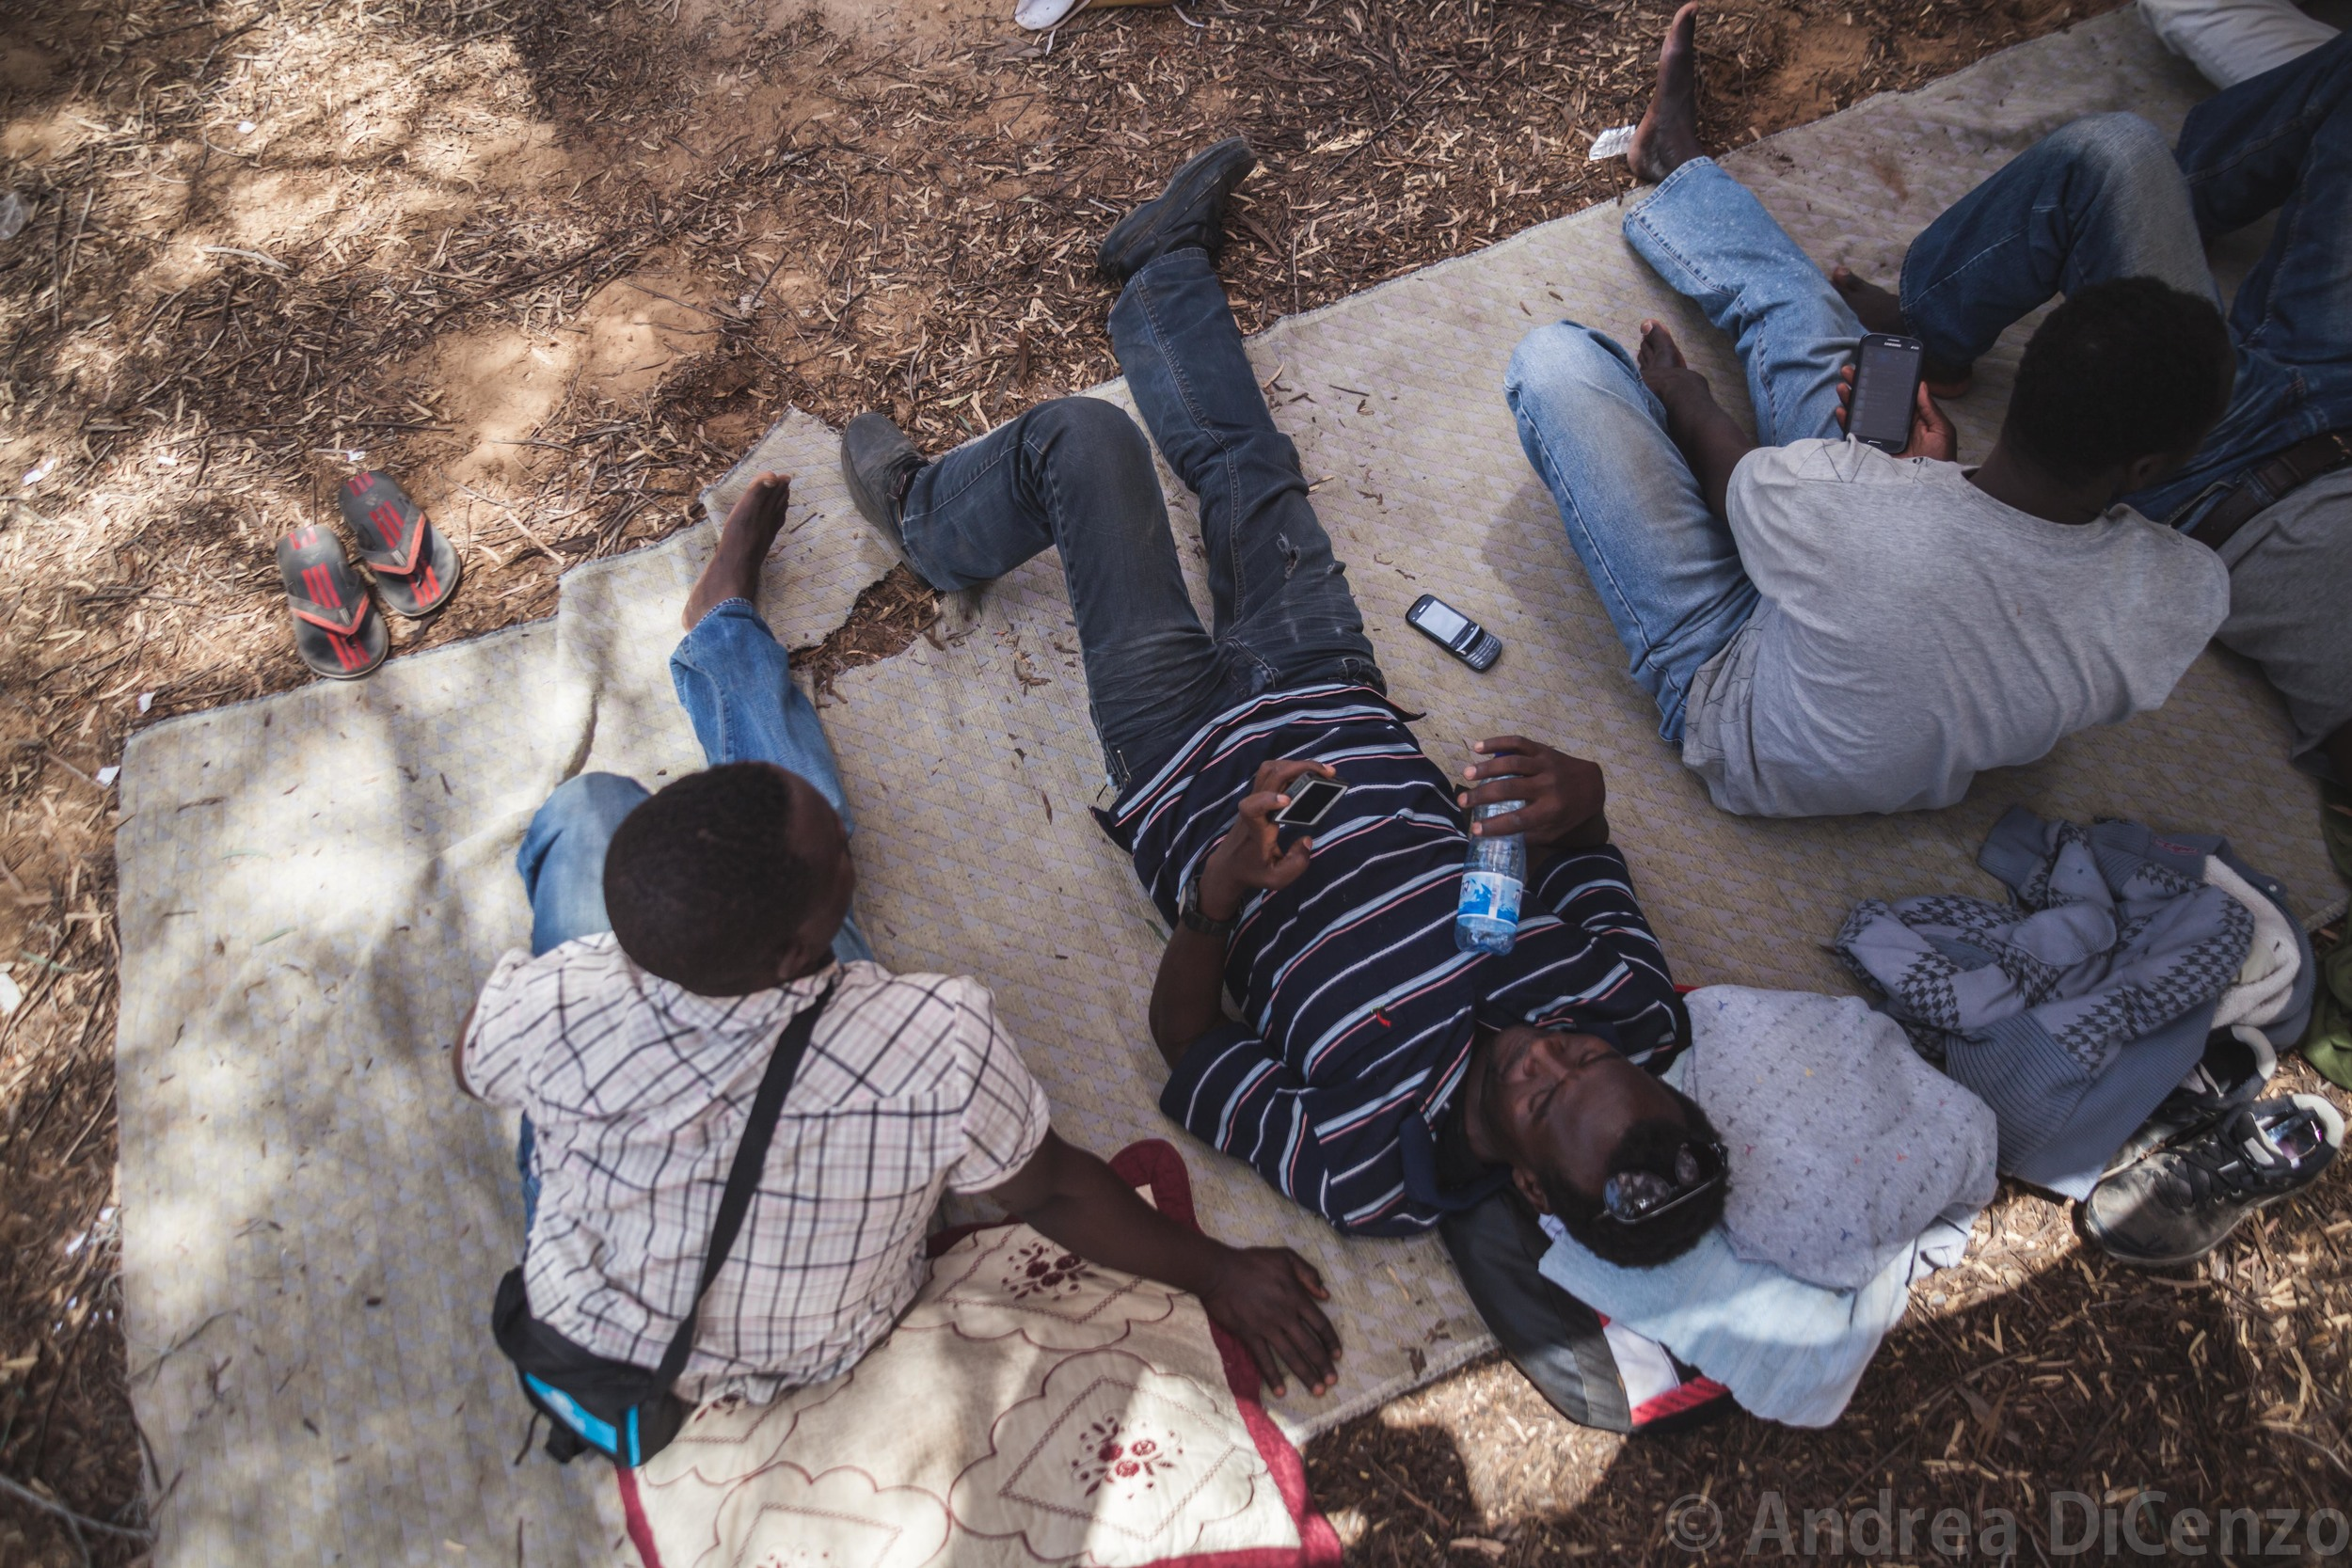 Three men rest under the shape of small trees as they protest the living conditions in Holot Detention Center.